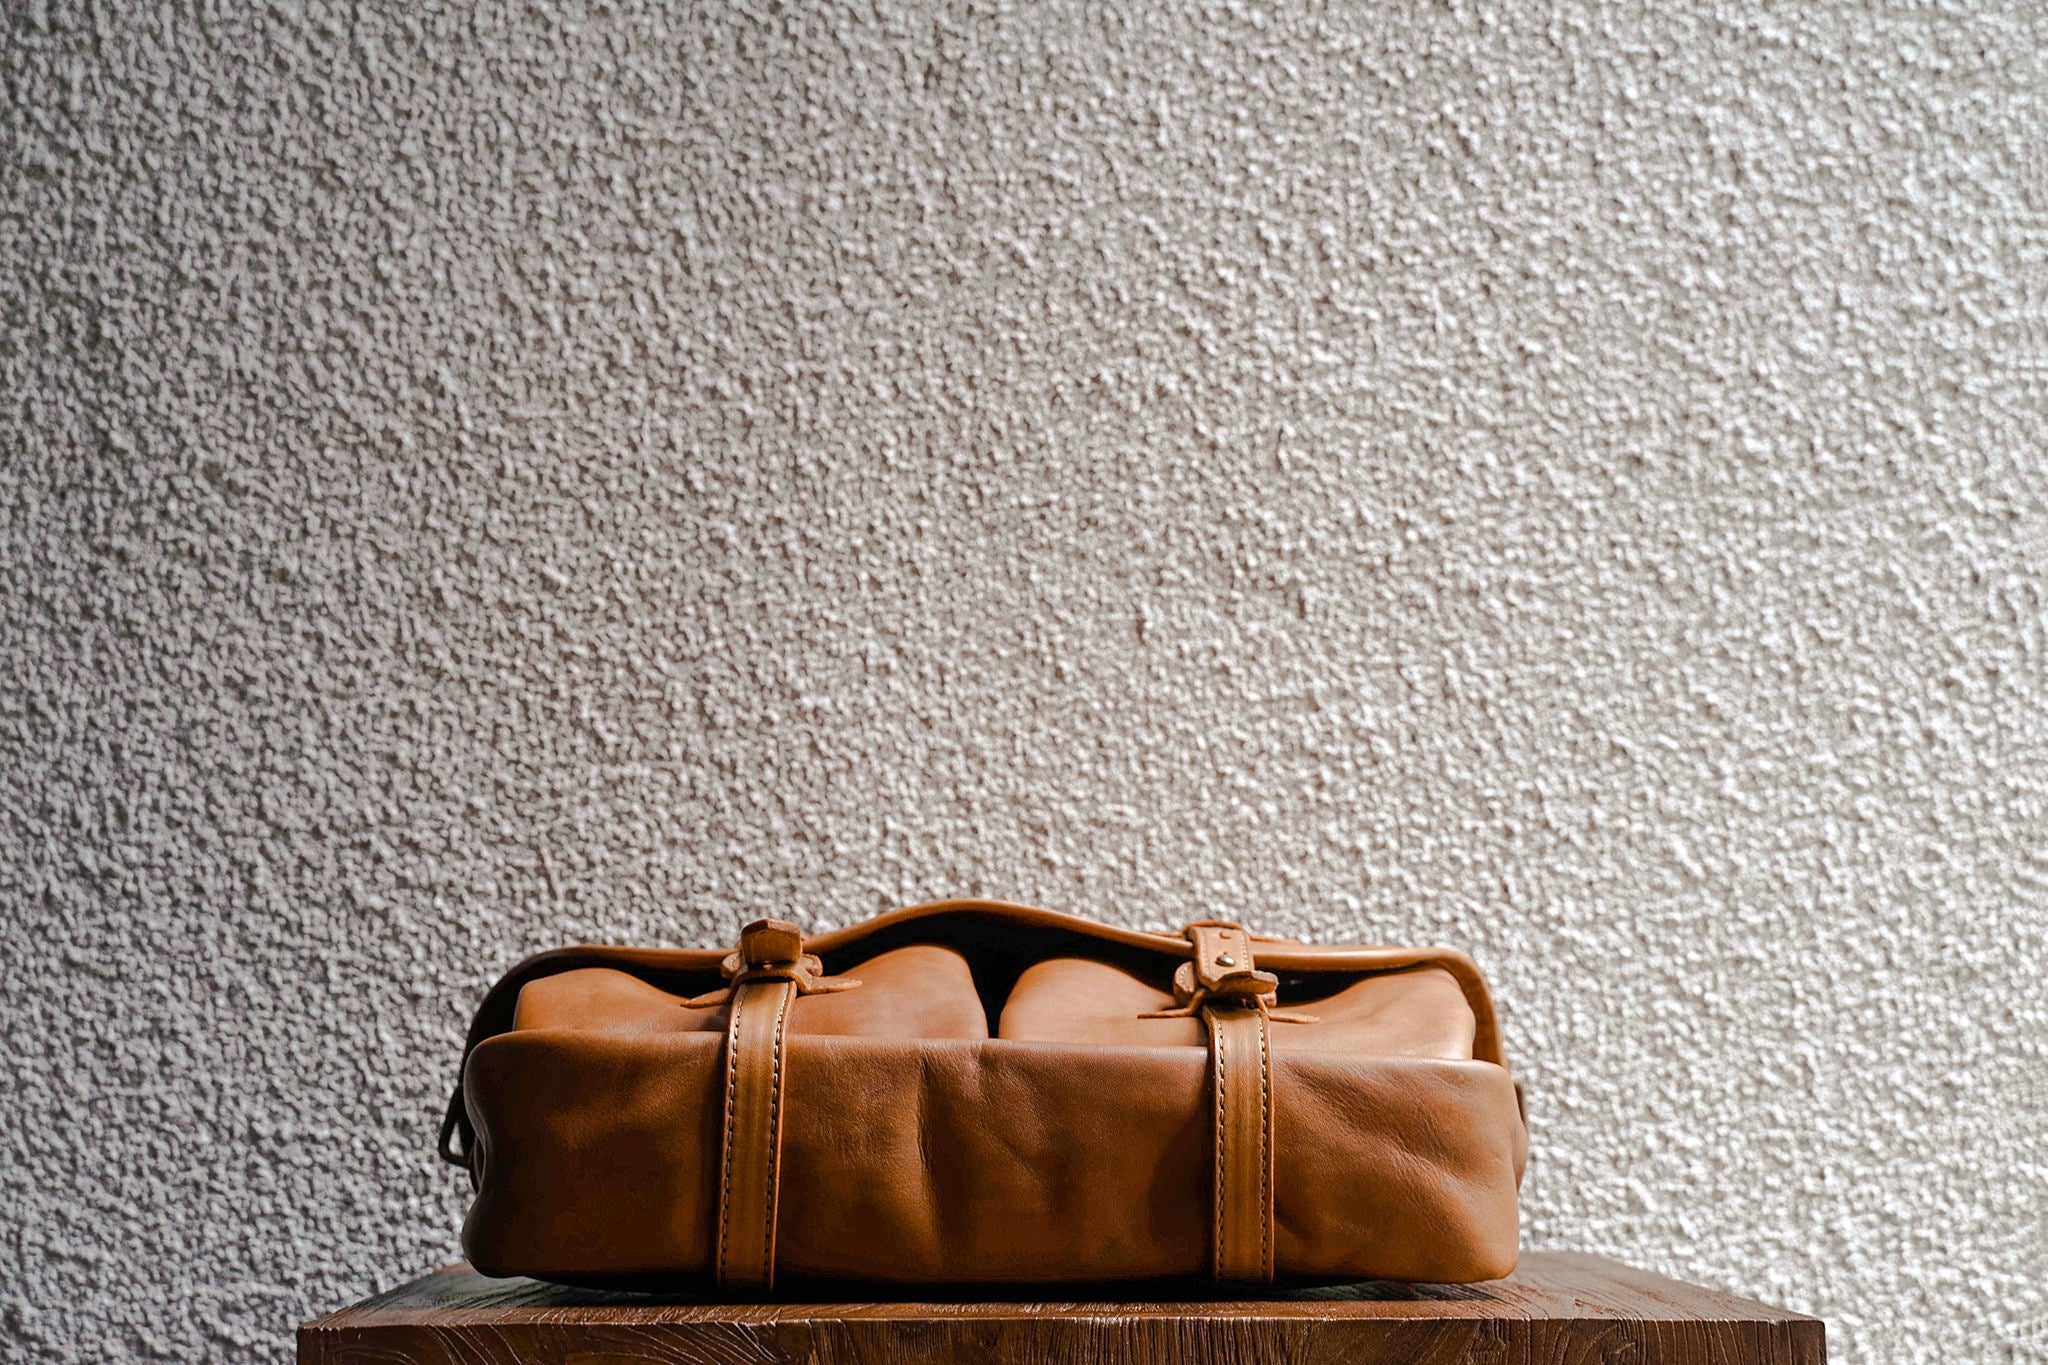 One of our signature design cues, the body straps go all around the bag, providing a load bearing structure for the bag. Keeping with the goal to minimize seams, the sides and bottom are made from one big piece of leather.